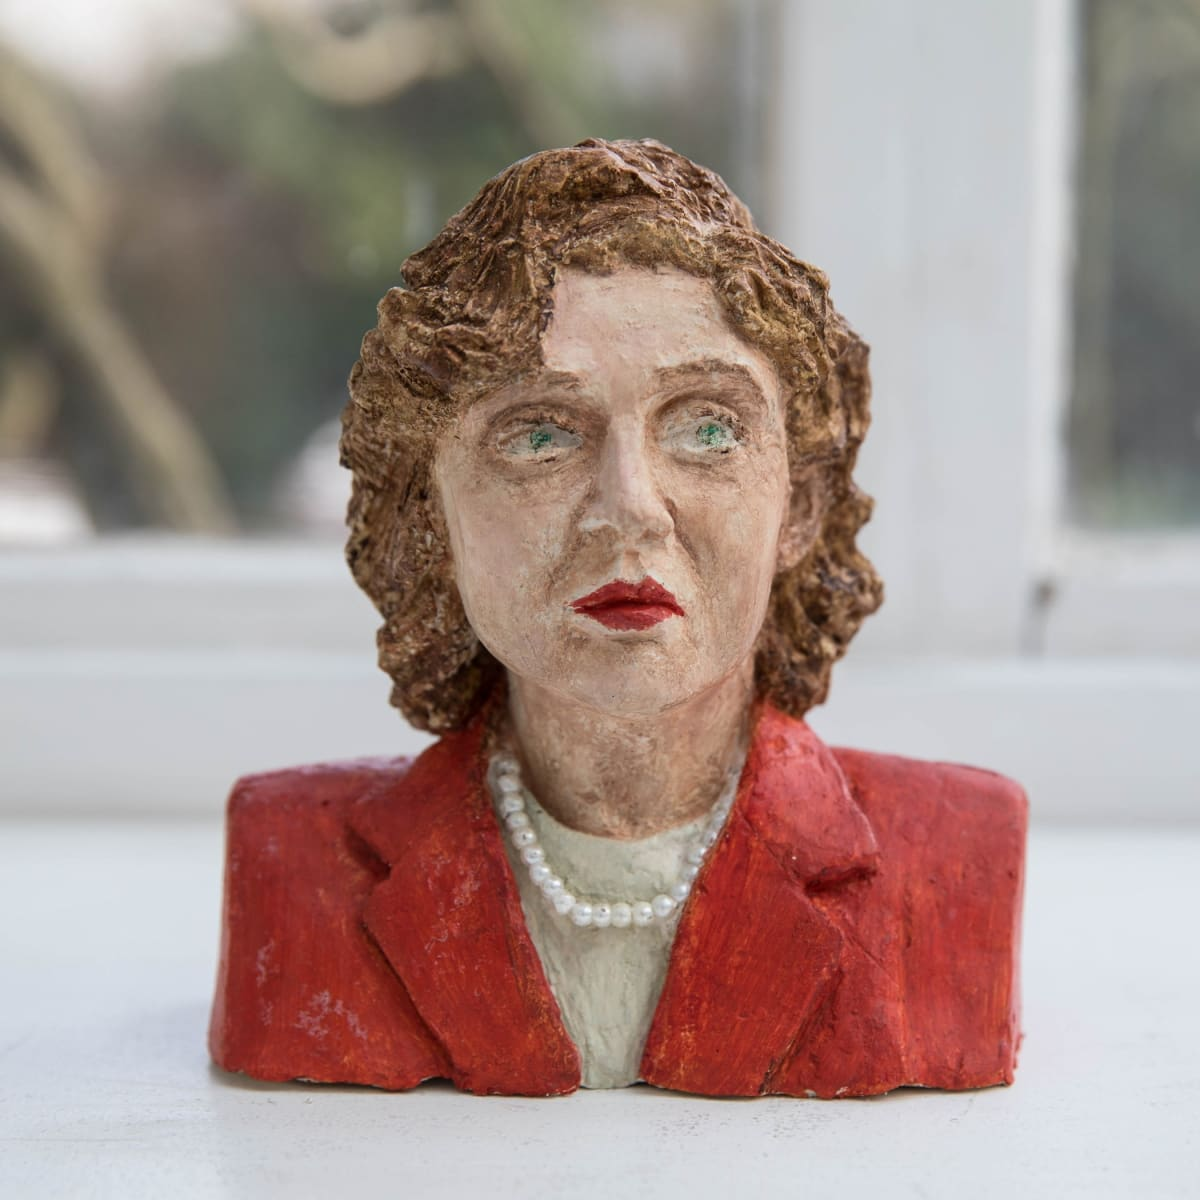 Nicole Farhi Muriel Spark ciment fondu and acrylic; hand-painted bronze casts available to purchase 18 x 15 x 7 cm edition of 7 + 3 APs